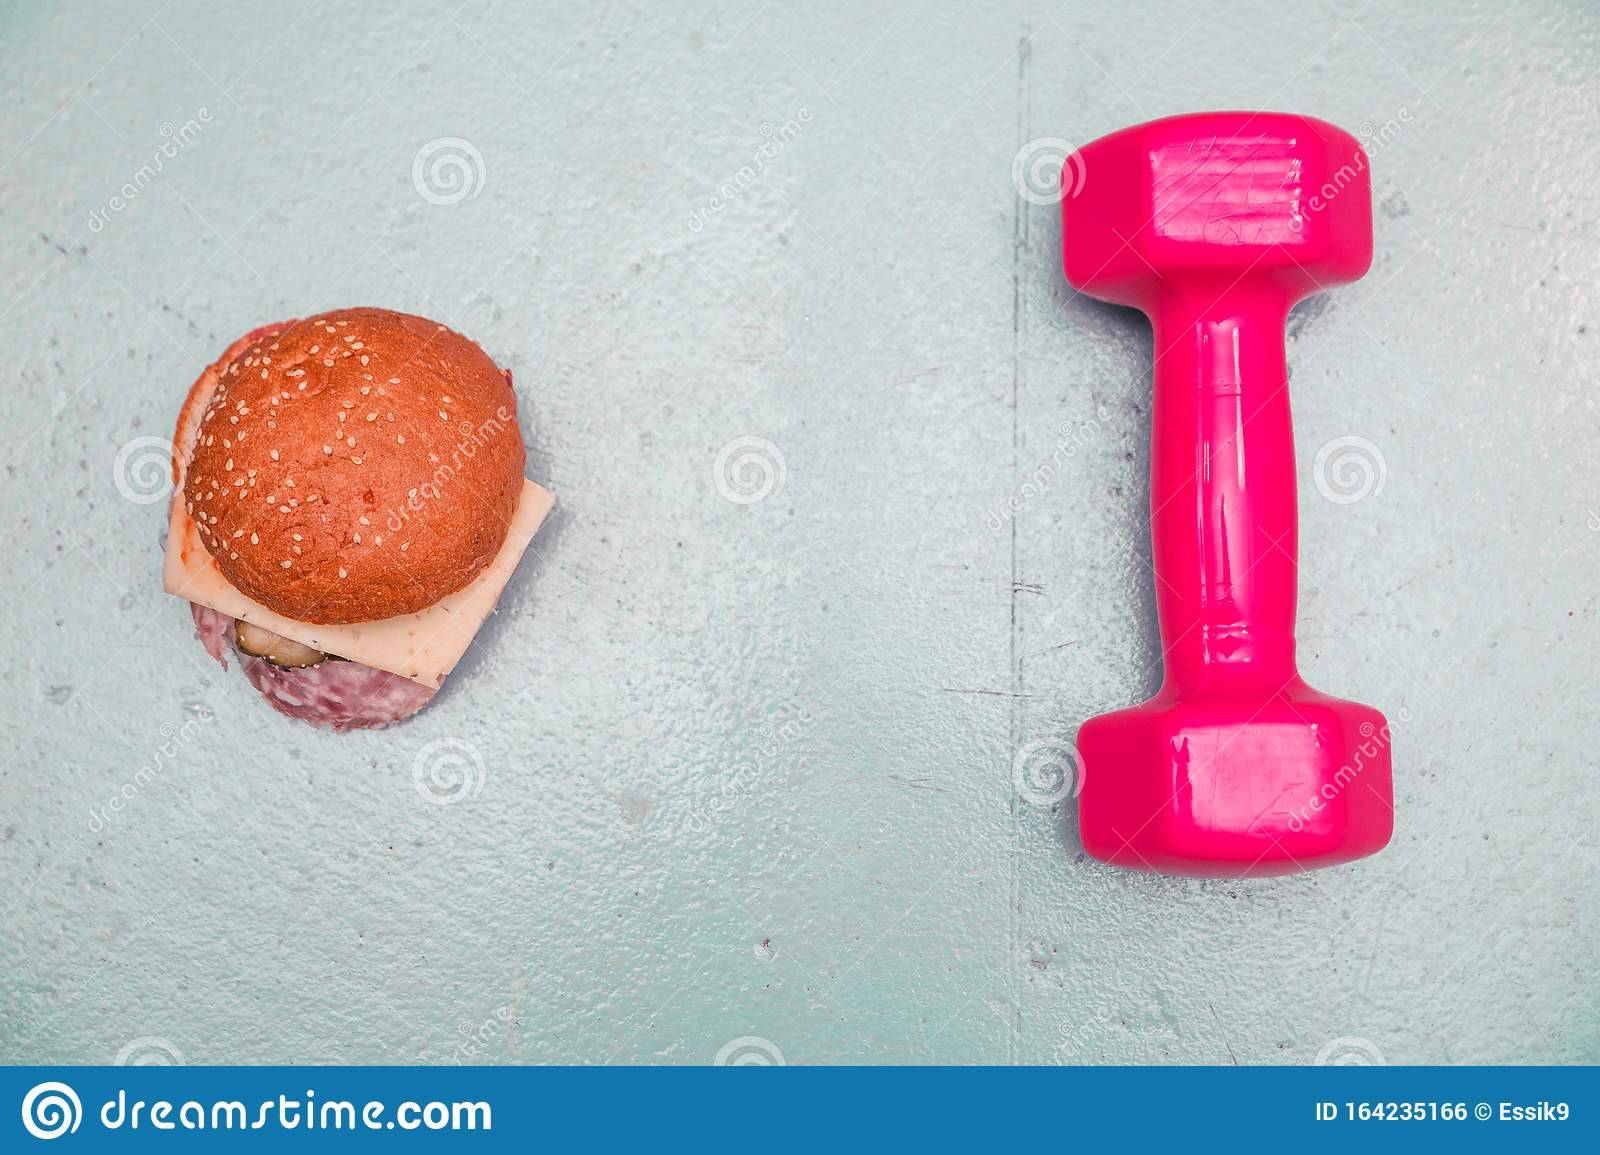 Sports Dumbbells And Fast Food On A Blue Background The